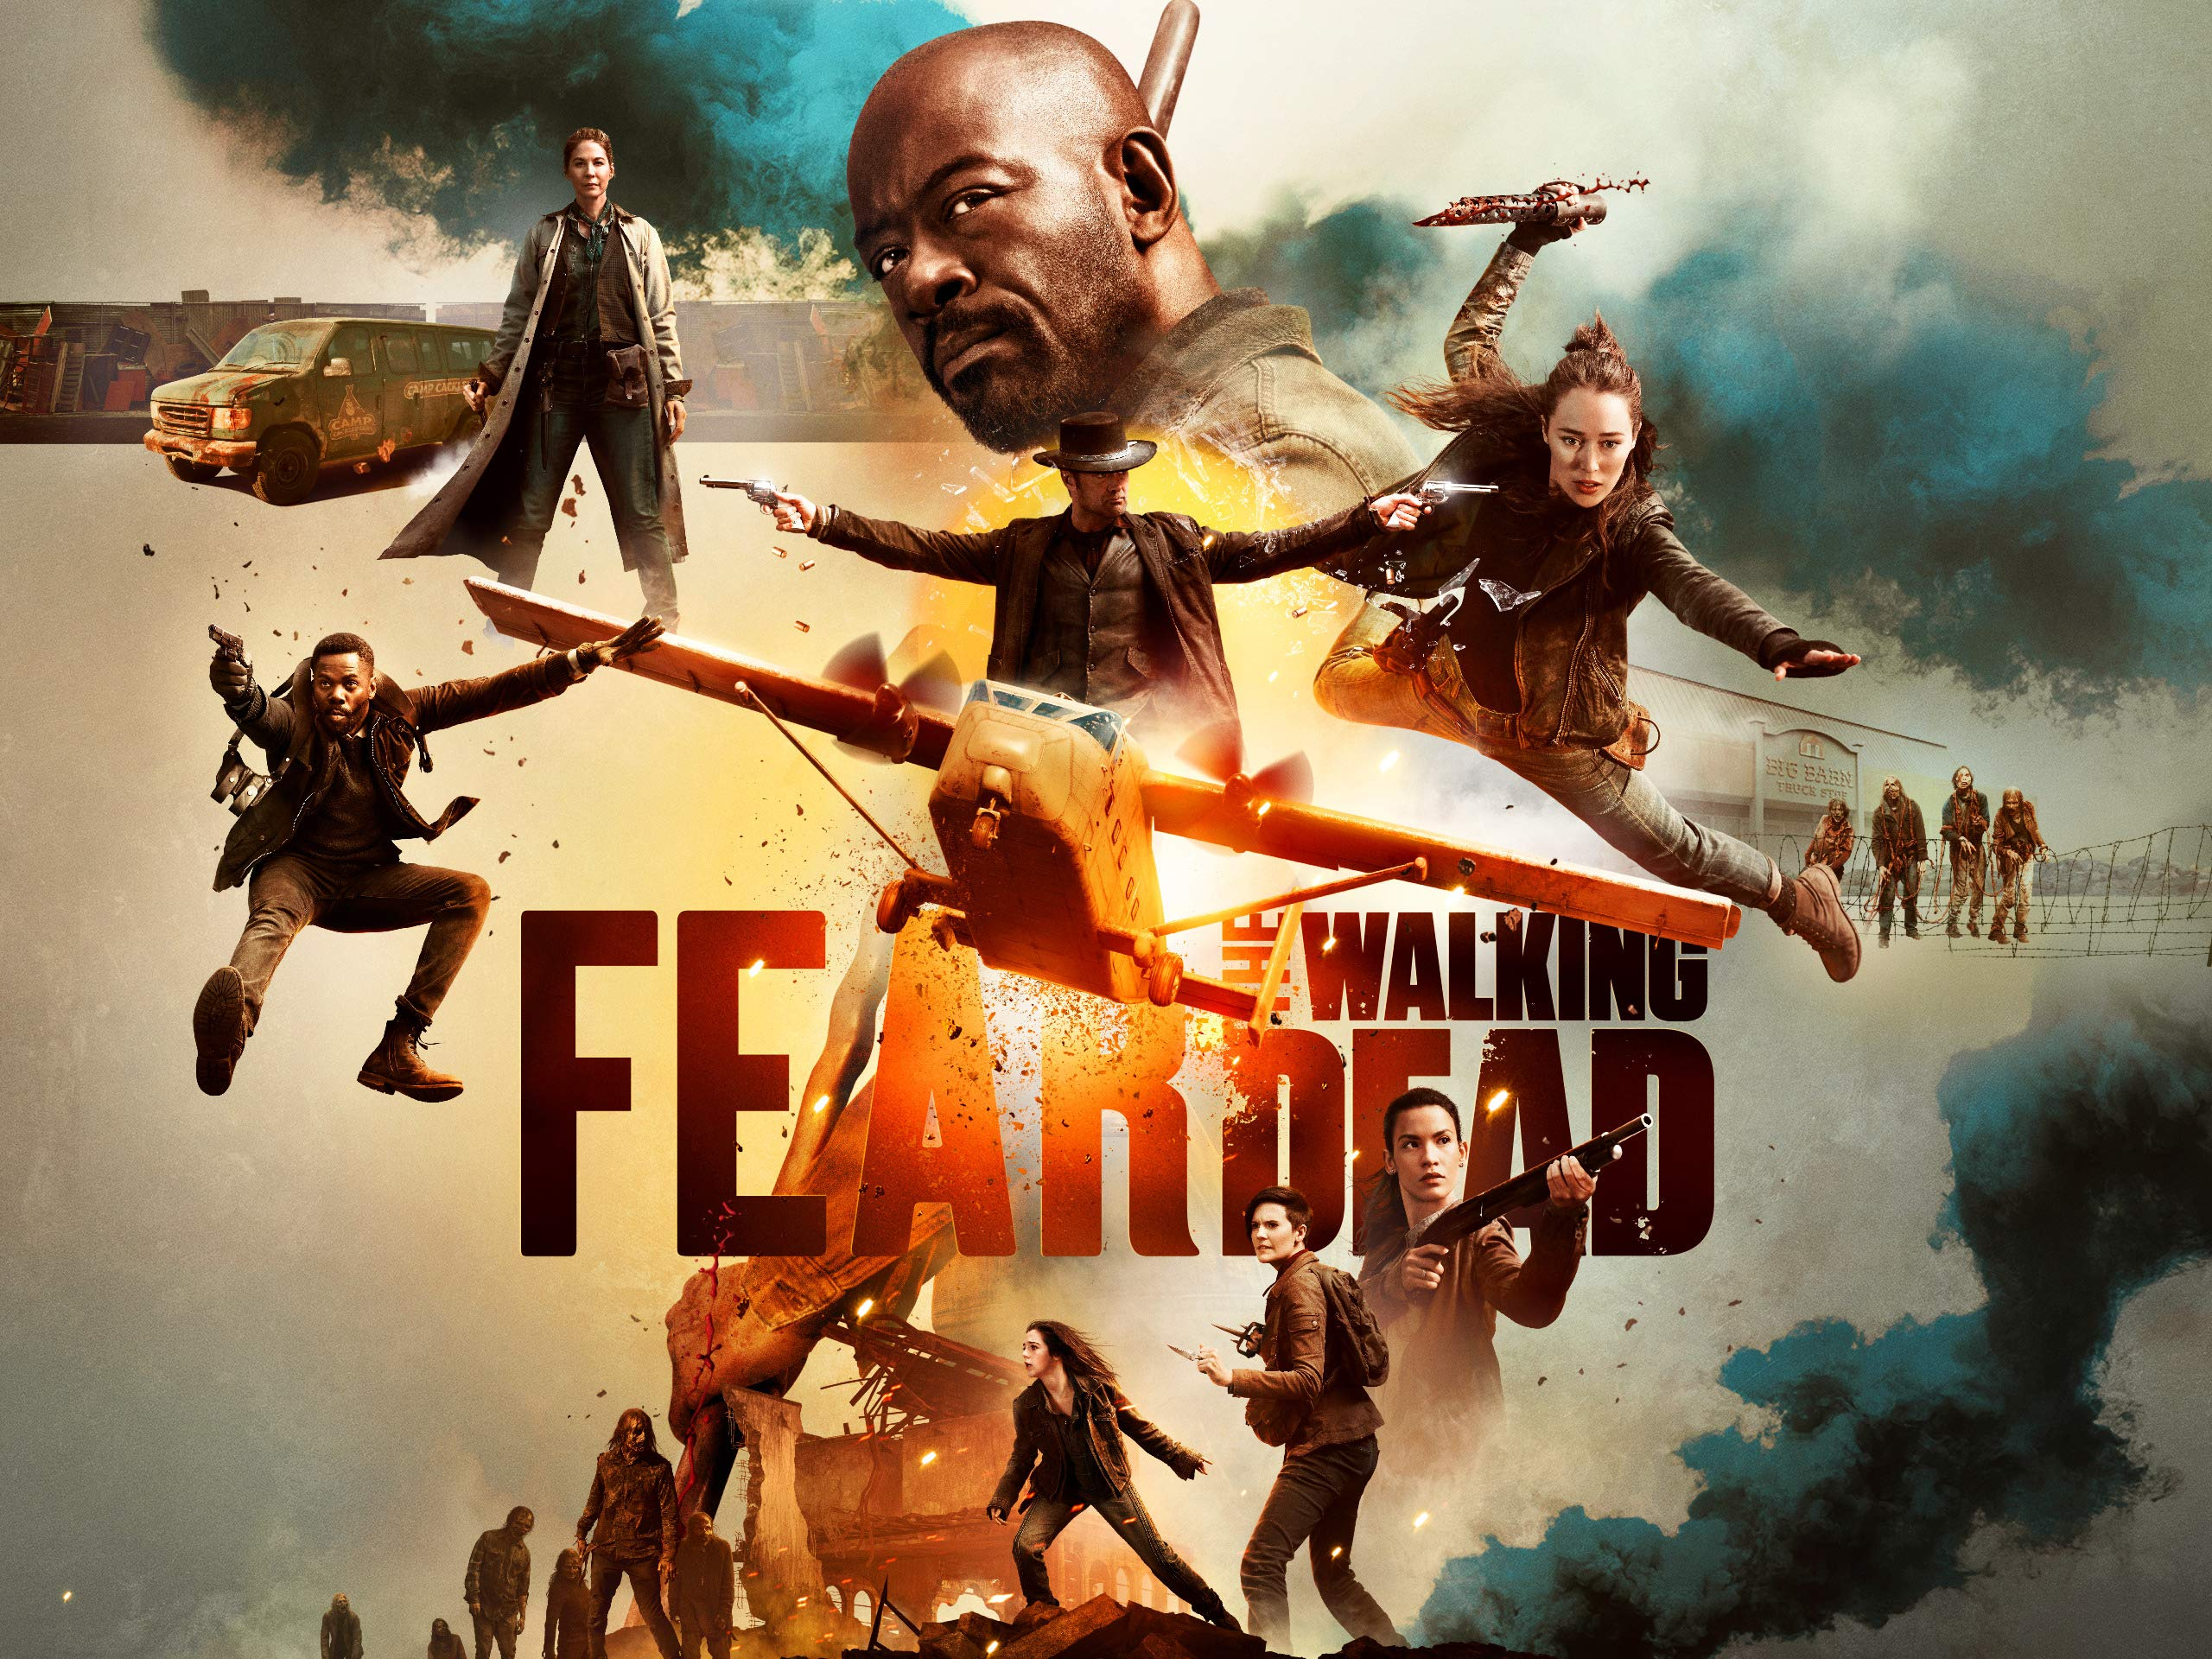 fear the walking dead season 2 episode 8 free online